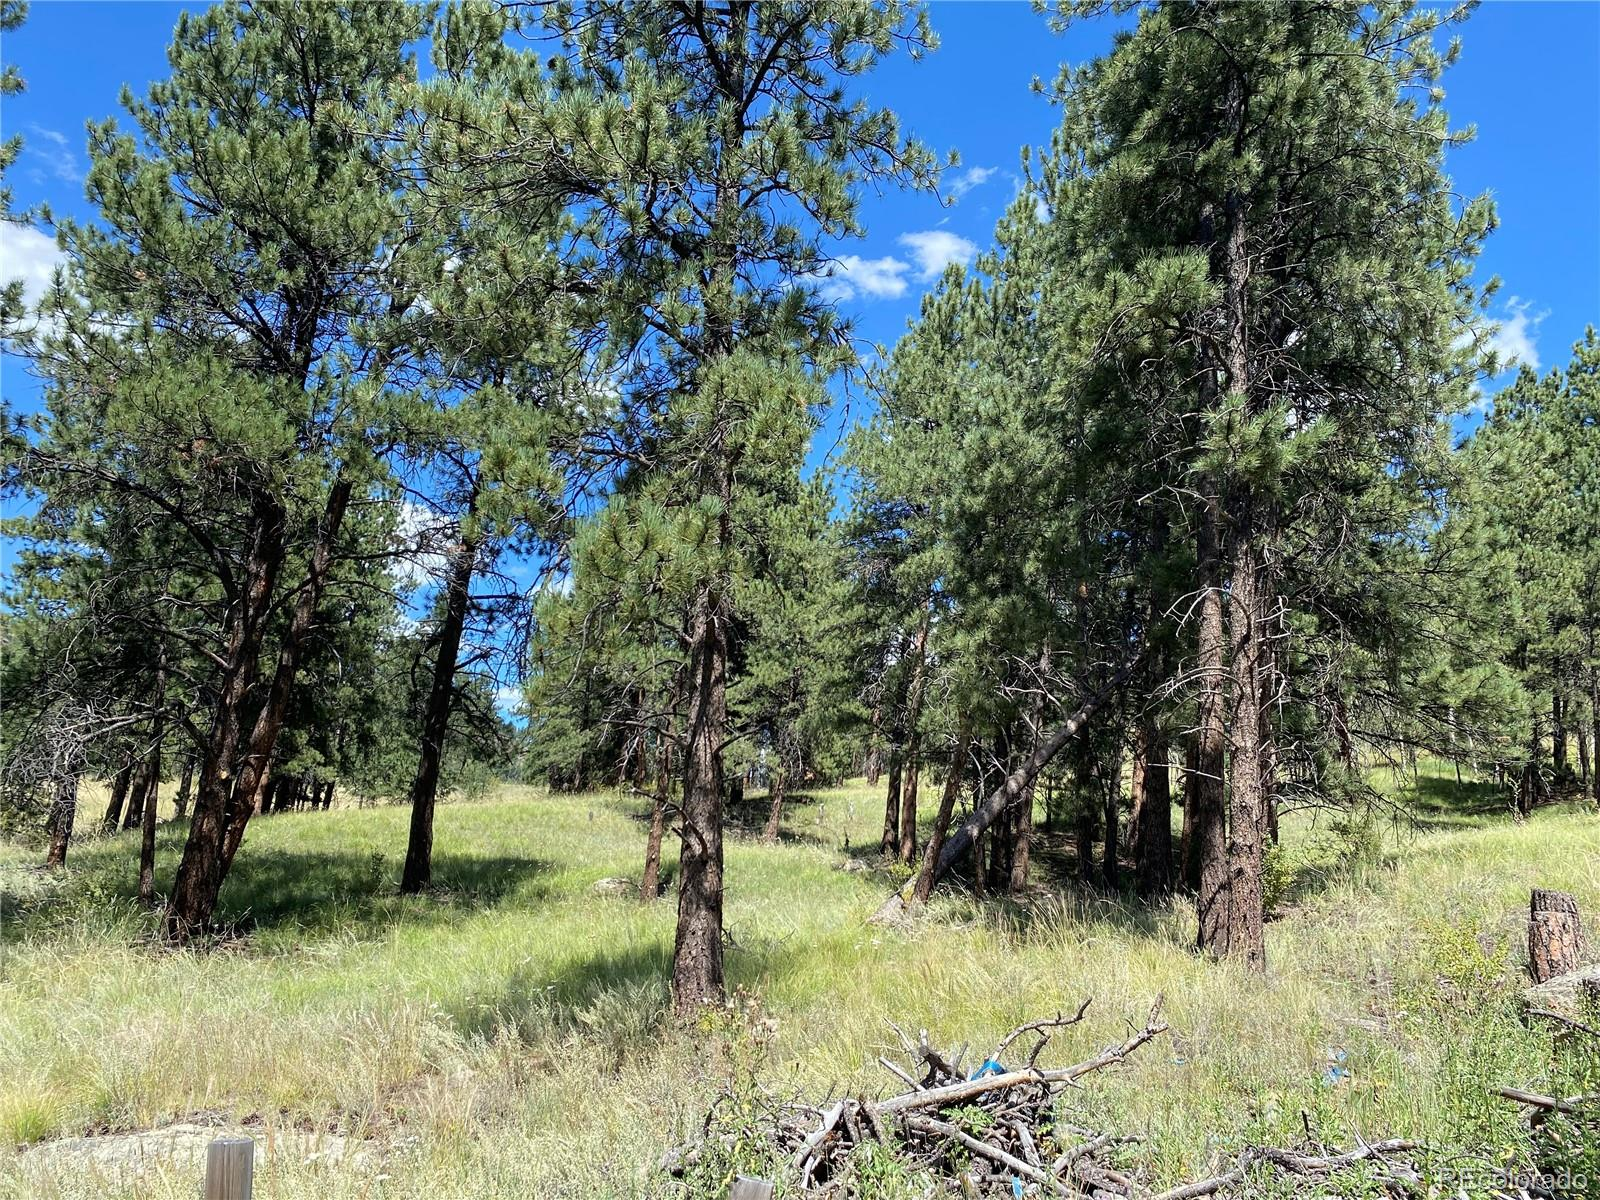 BRING Offer*Fantastic opportunity for new commercial development!  15+ gently sloping to sloped acres off Crow Hill provide a pleasing, natural mountain backdrop for any use.  Ideal for investors, developers or owner users.  Build to suit your vision for growing Bailey community!  Excellent visibility and access from US Hwy 285.  Accessible via existing paved road.  Well drilled on property.  Taxes will be determined in accordance with new use.